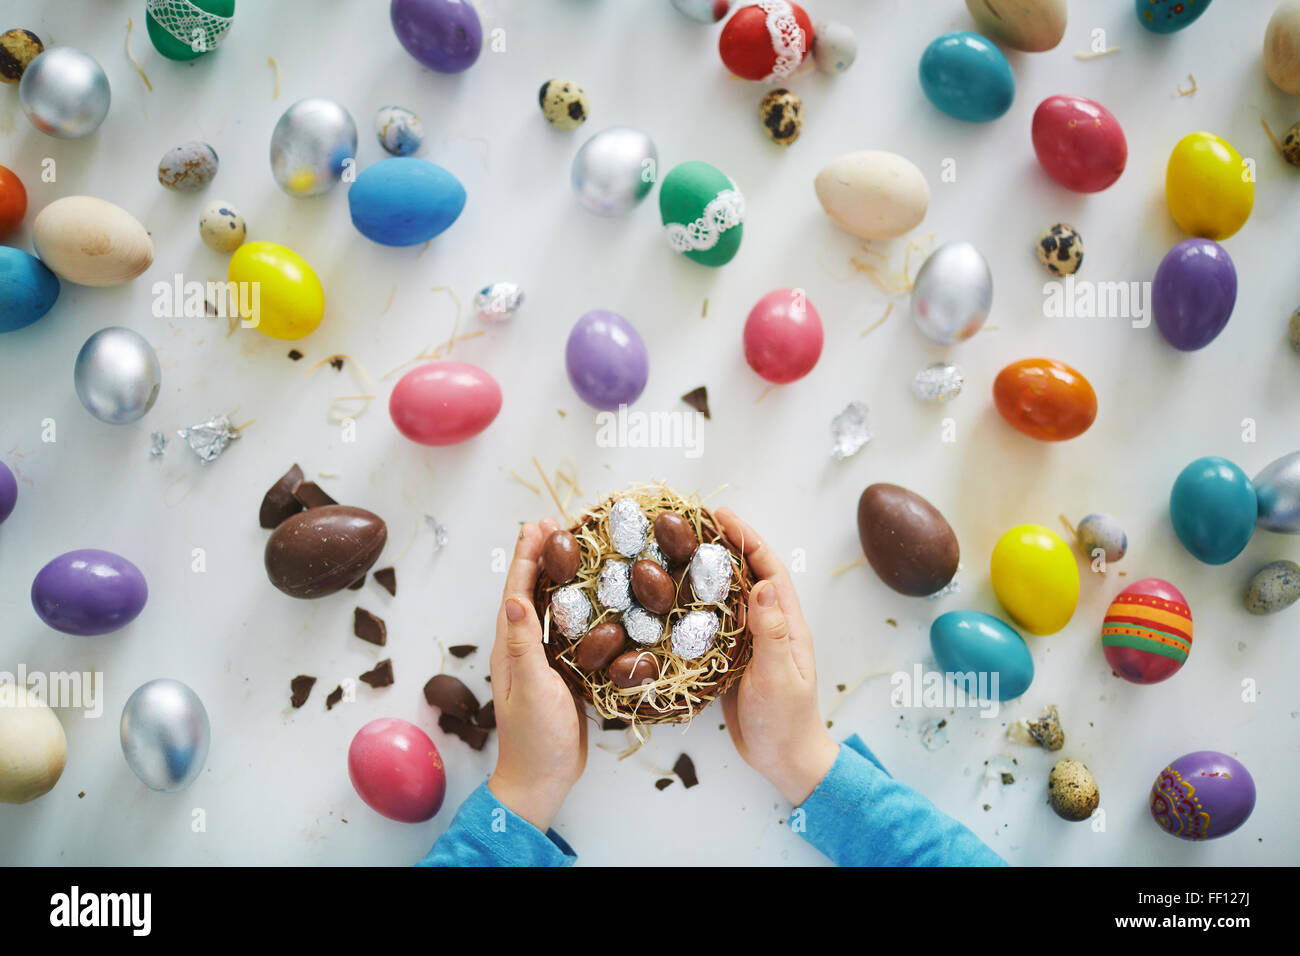 Hands of child holding small nest or basket with chocolate Easter eggs over painted ones - Stock Image